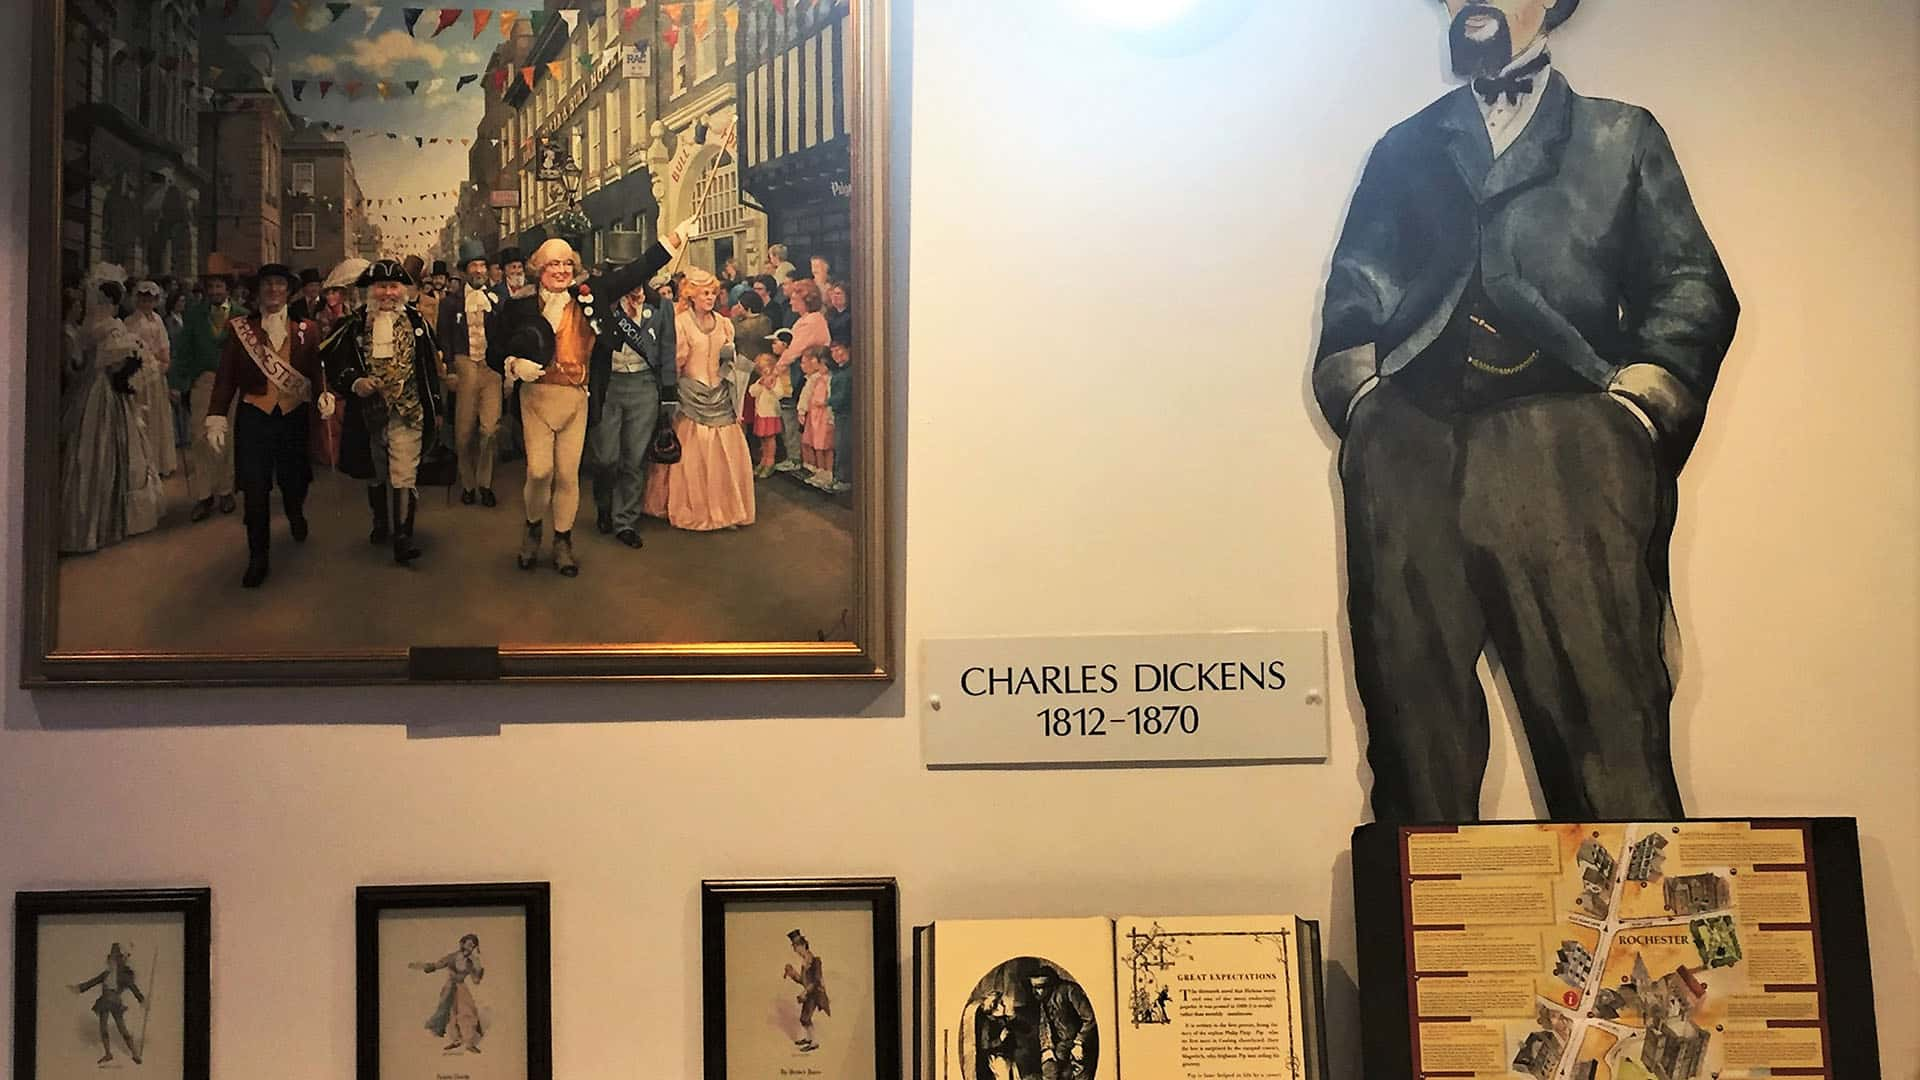 Charles Dickens Rochester